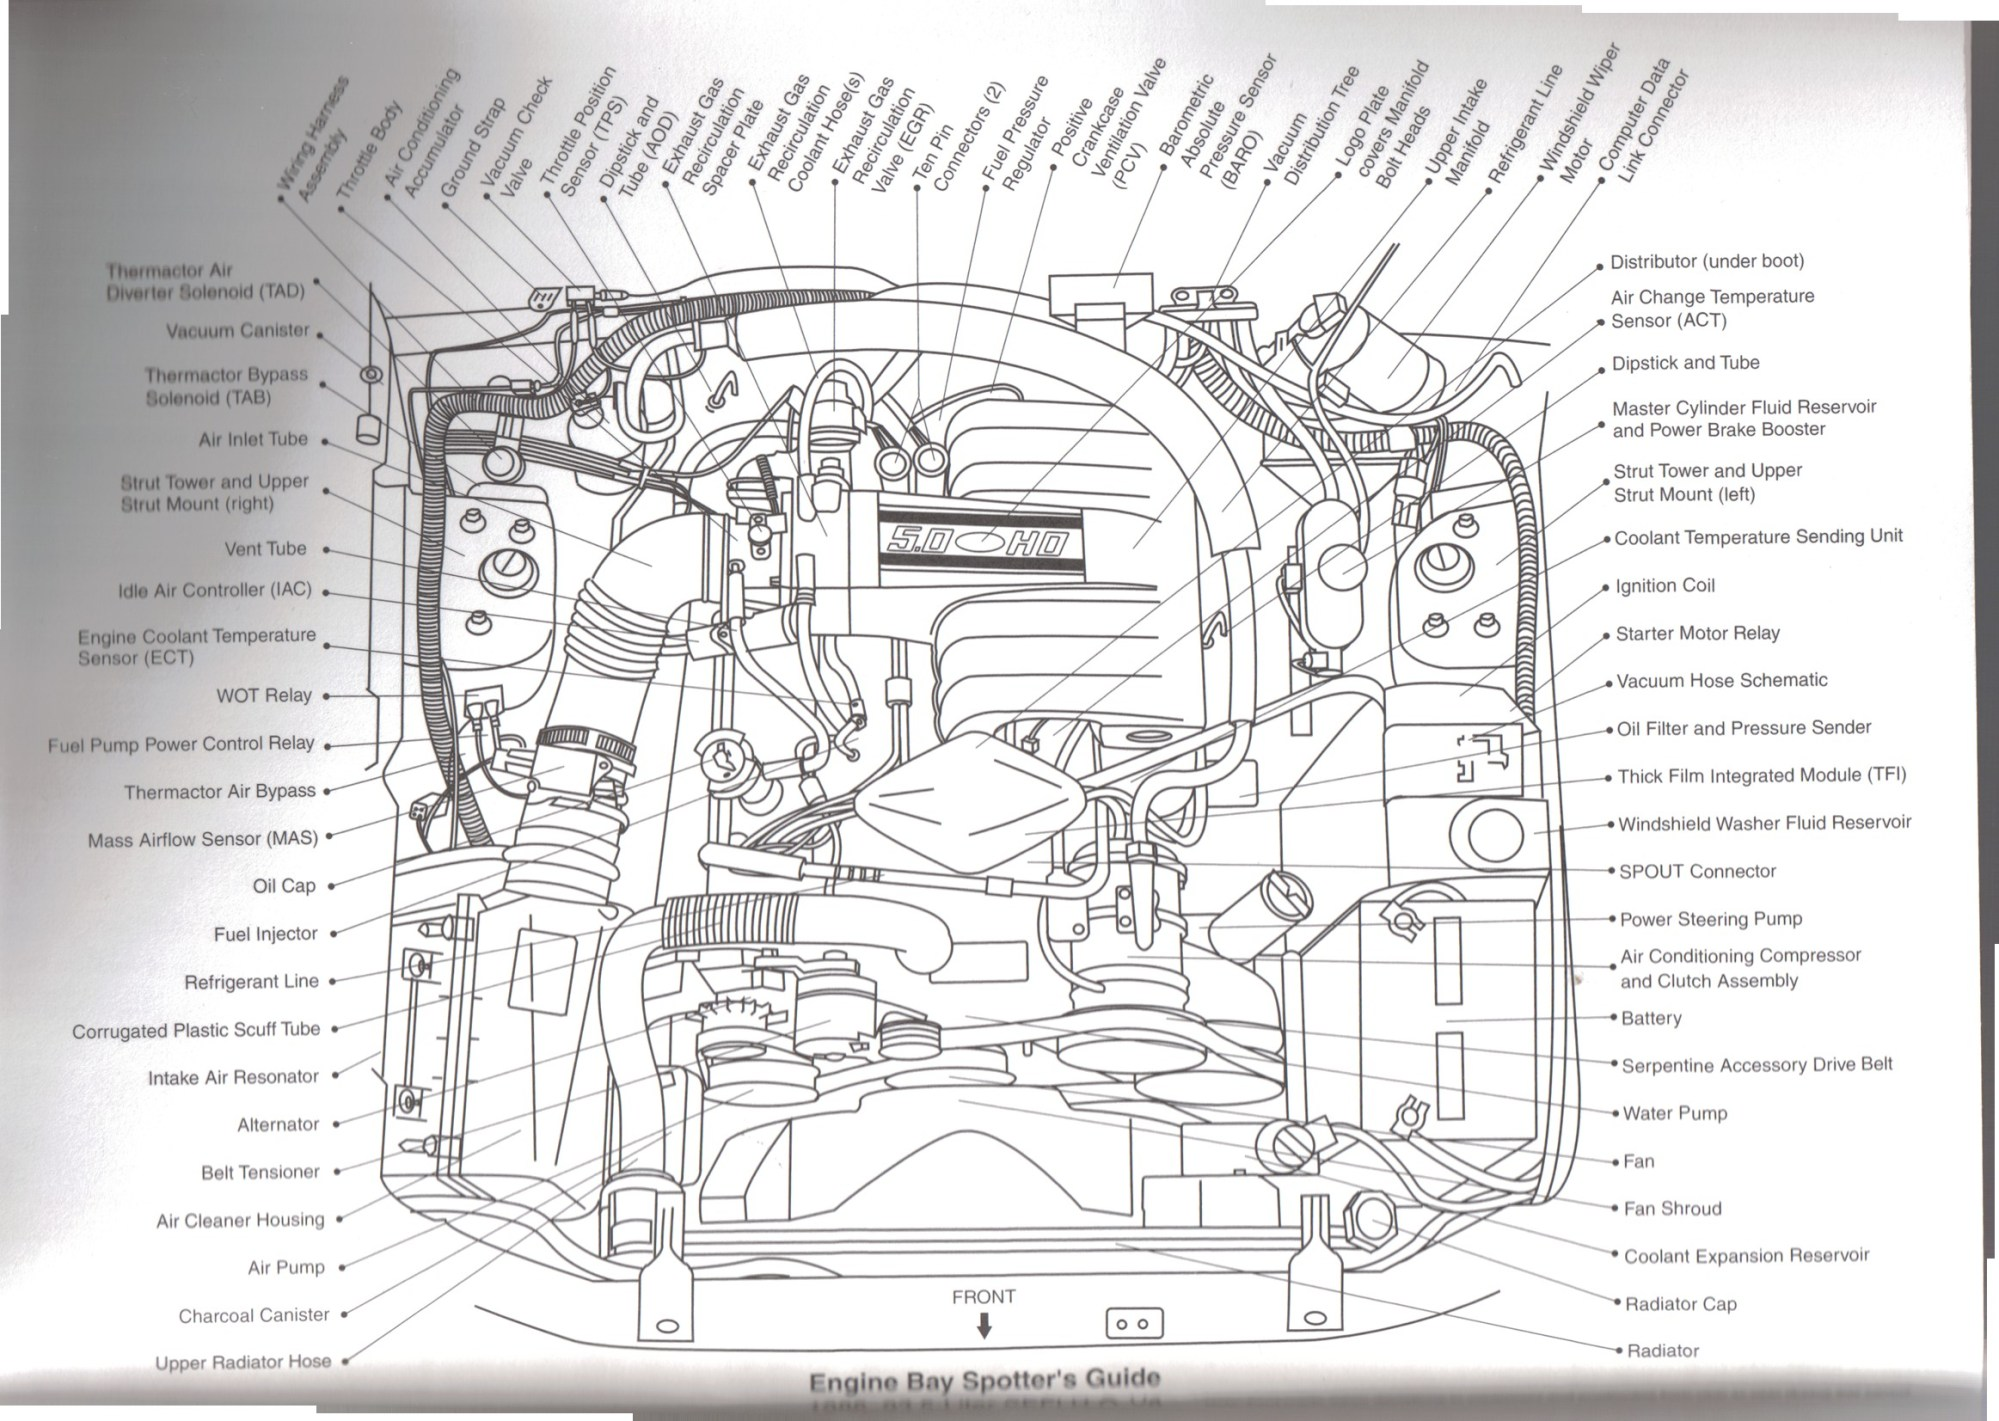 hight resolution of 1986 mustang wiring diagram wiring diagram ame 1986 mustang 5 0 1986 lighting diagram schematic by tmoss